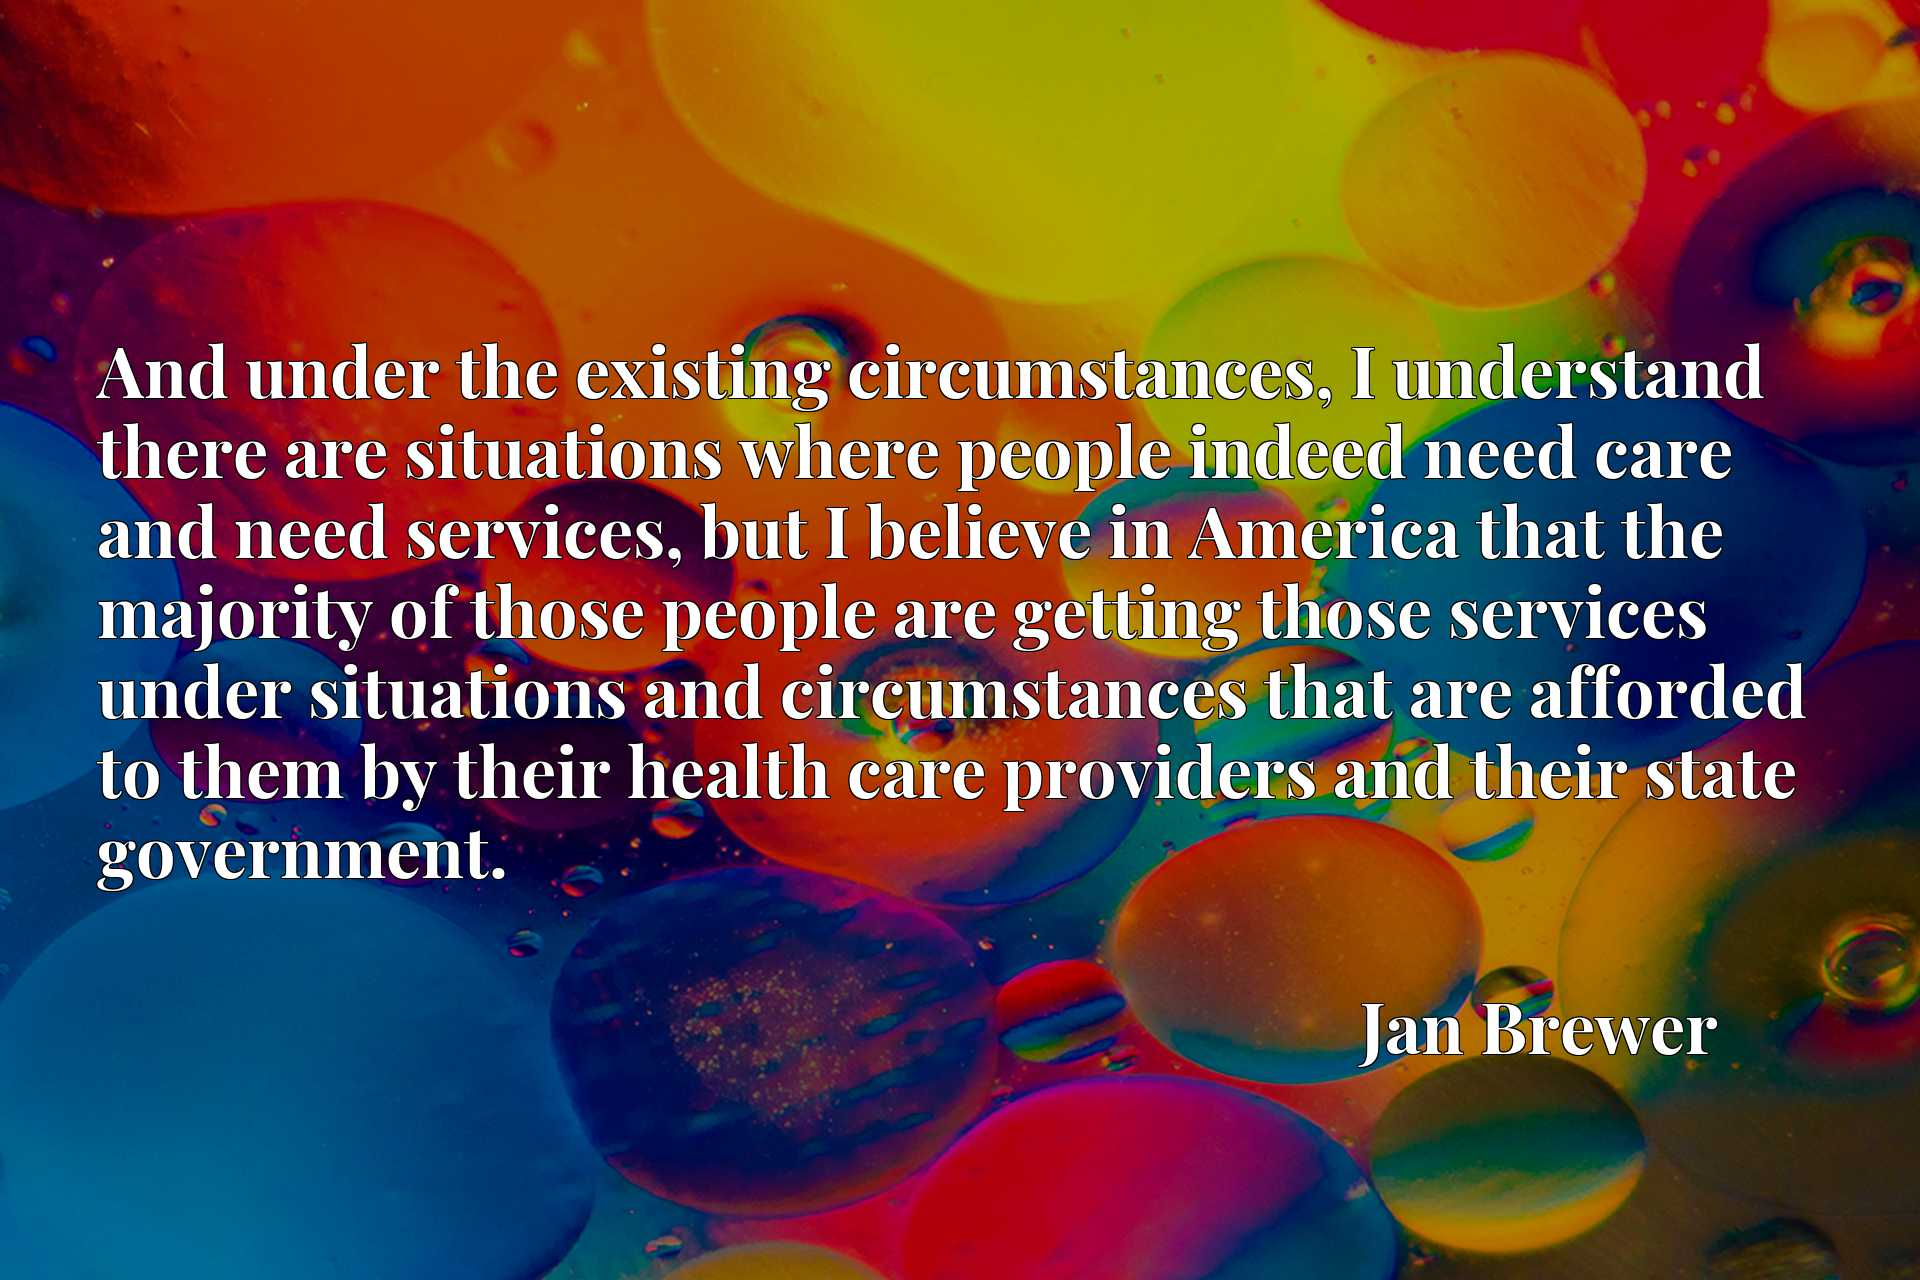 And under the existing circumstances, I understand there are situations where people indeed need care and need services, but I believe in America that the majority of those people are getting those services under situations and circumstances that are afforded to them by their health care providers and their state government.